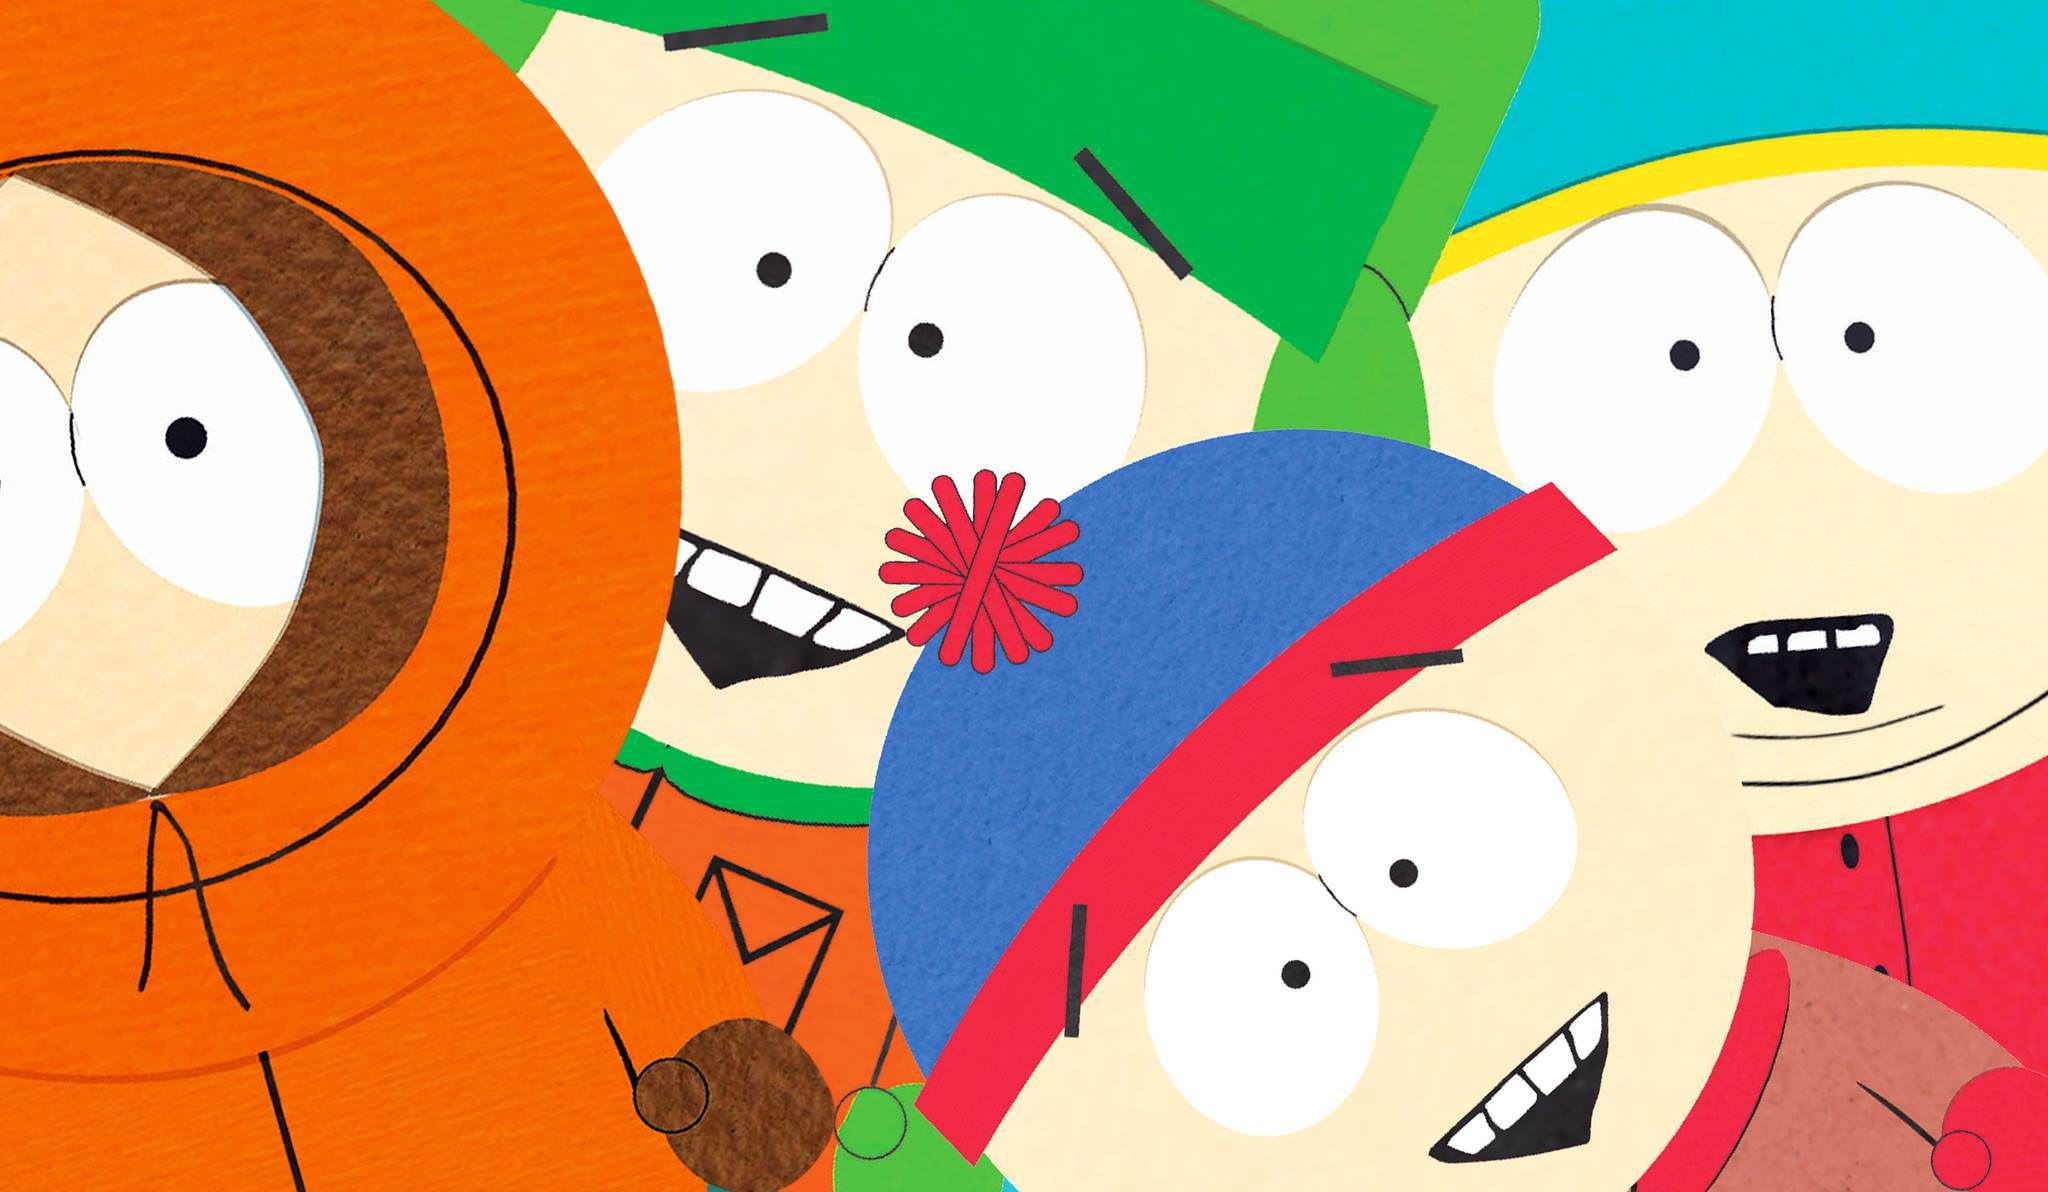 South Park Wallpapers Hd Wallpapers Backgrounds Images Art Photos South Park Cartoon Wallpaper Park South